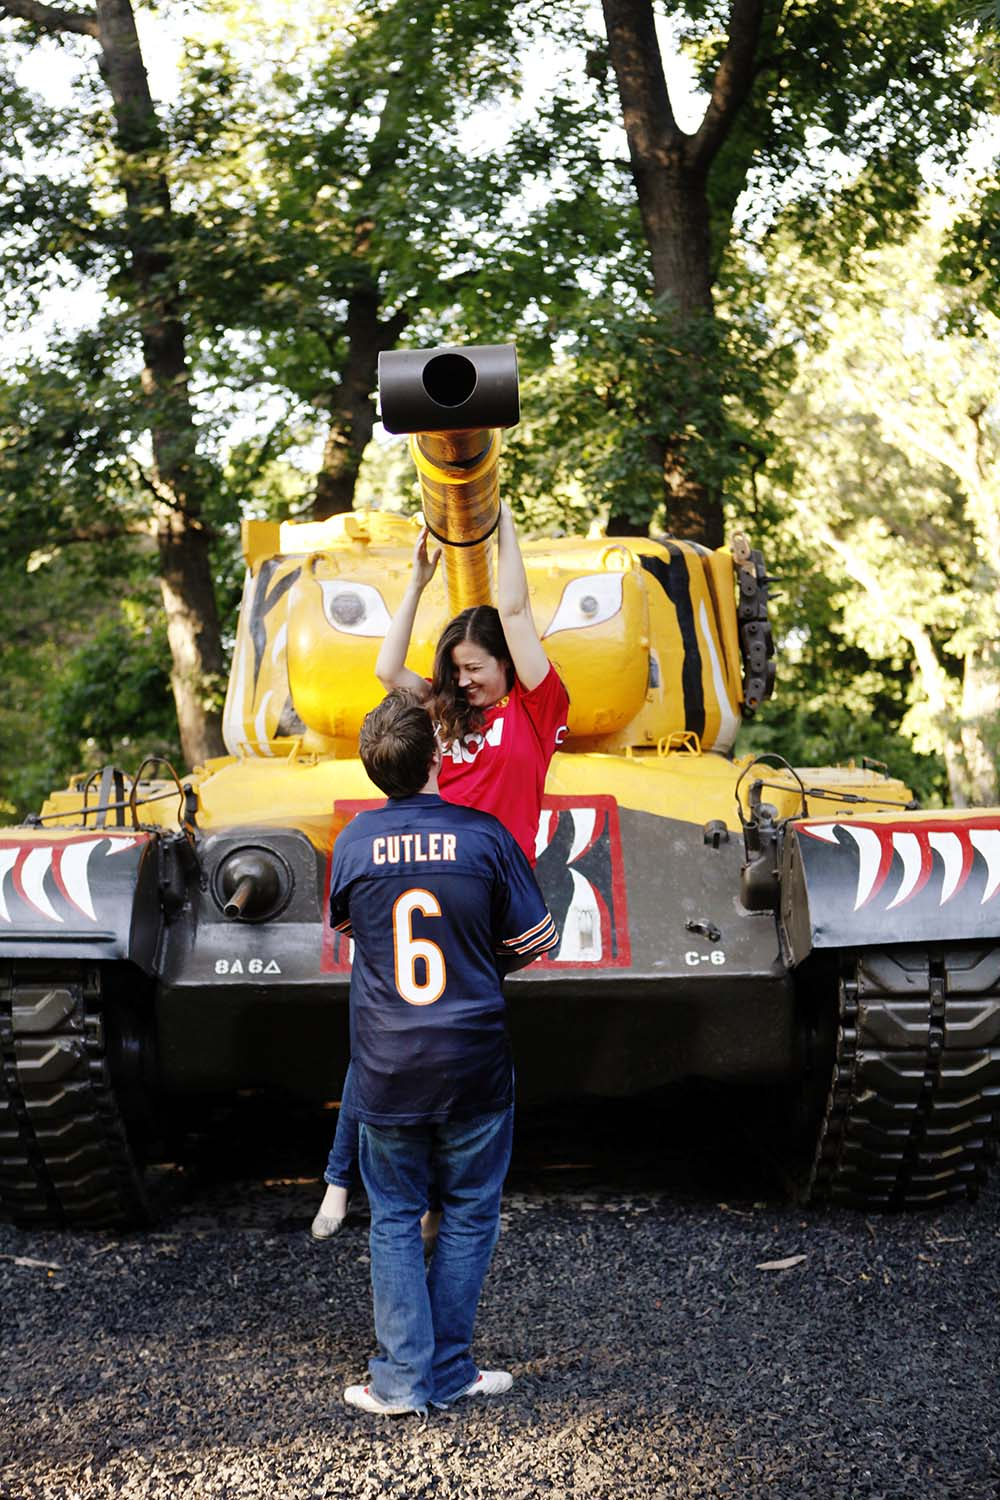 Cantigny Military tanks museum engagement photography, Illinois, engaged, summer, day, sunny, Katie & Mike, spring, fun, funny, silly, cute, photos